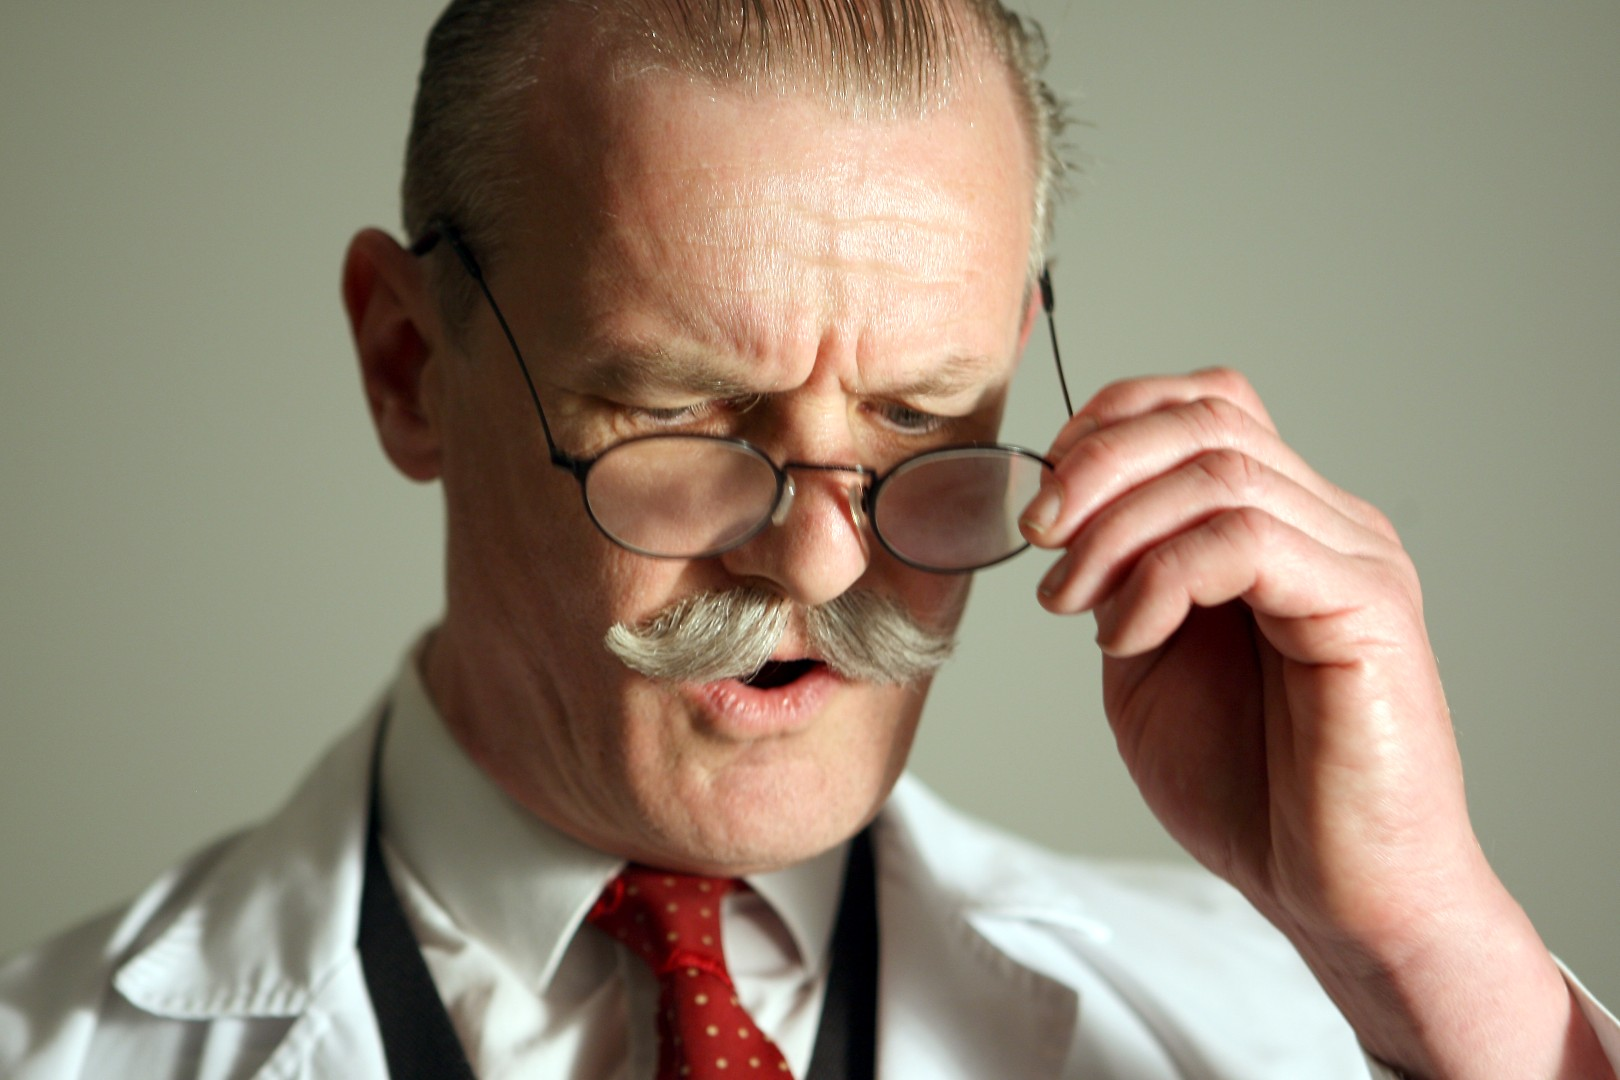 A mustachioed biologist in a white lab coat in the process of removing his spectacles